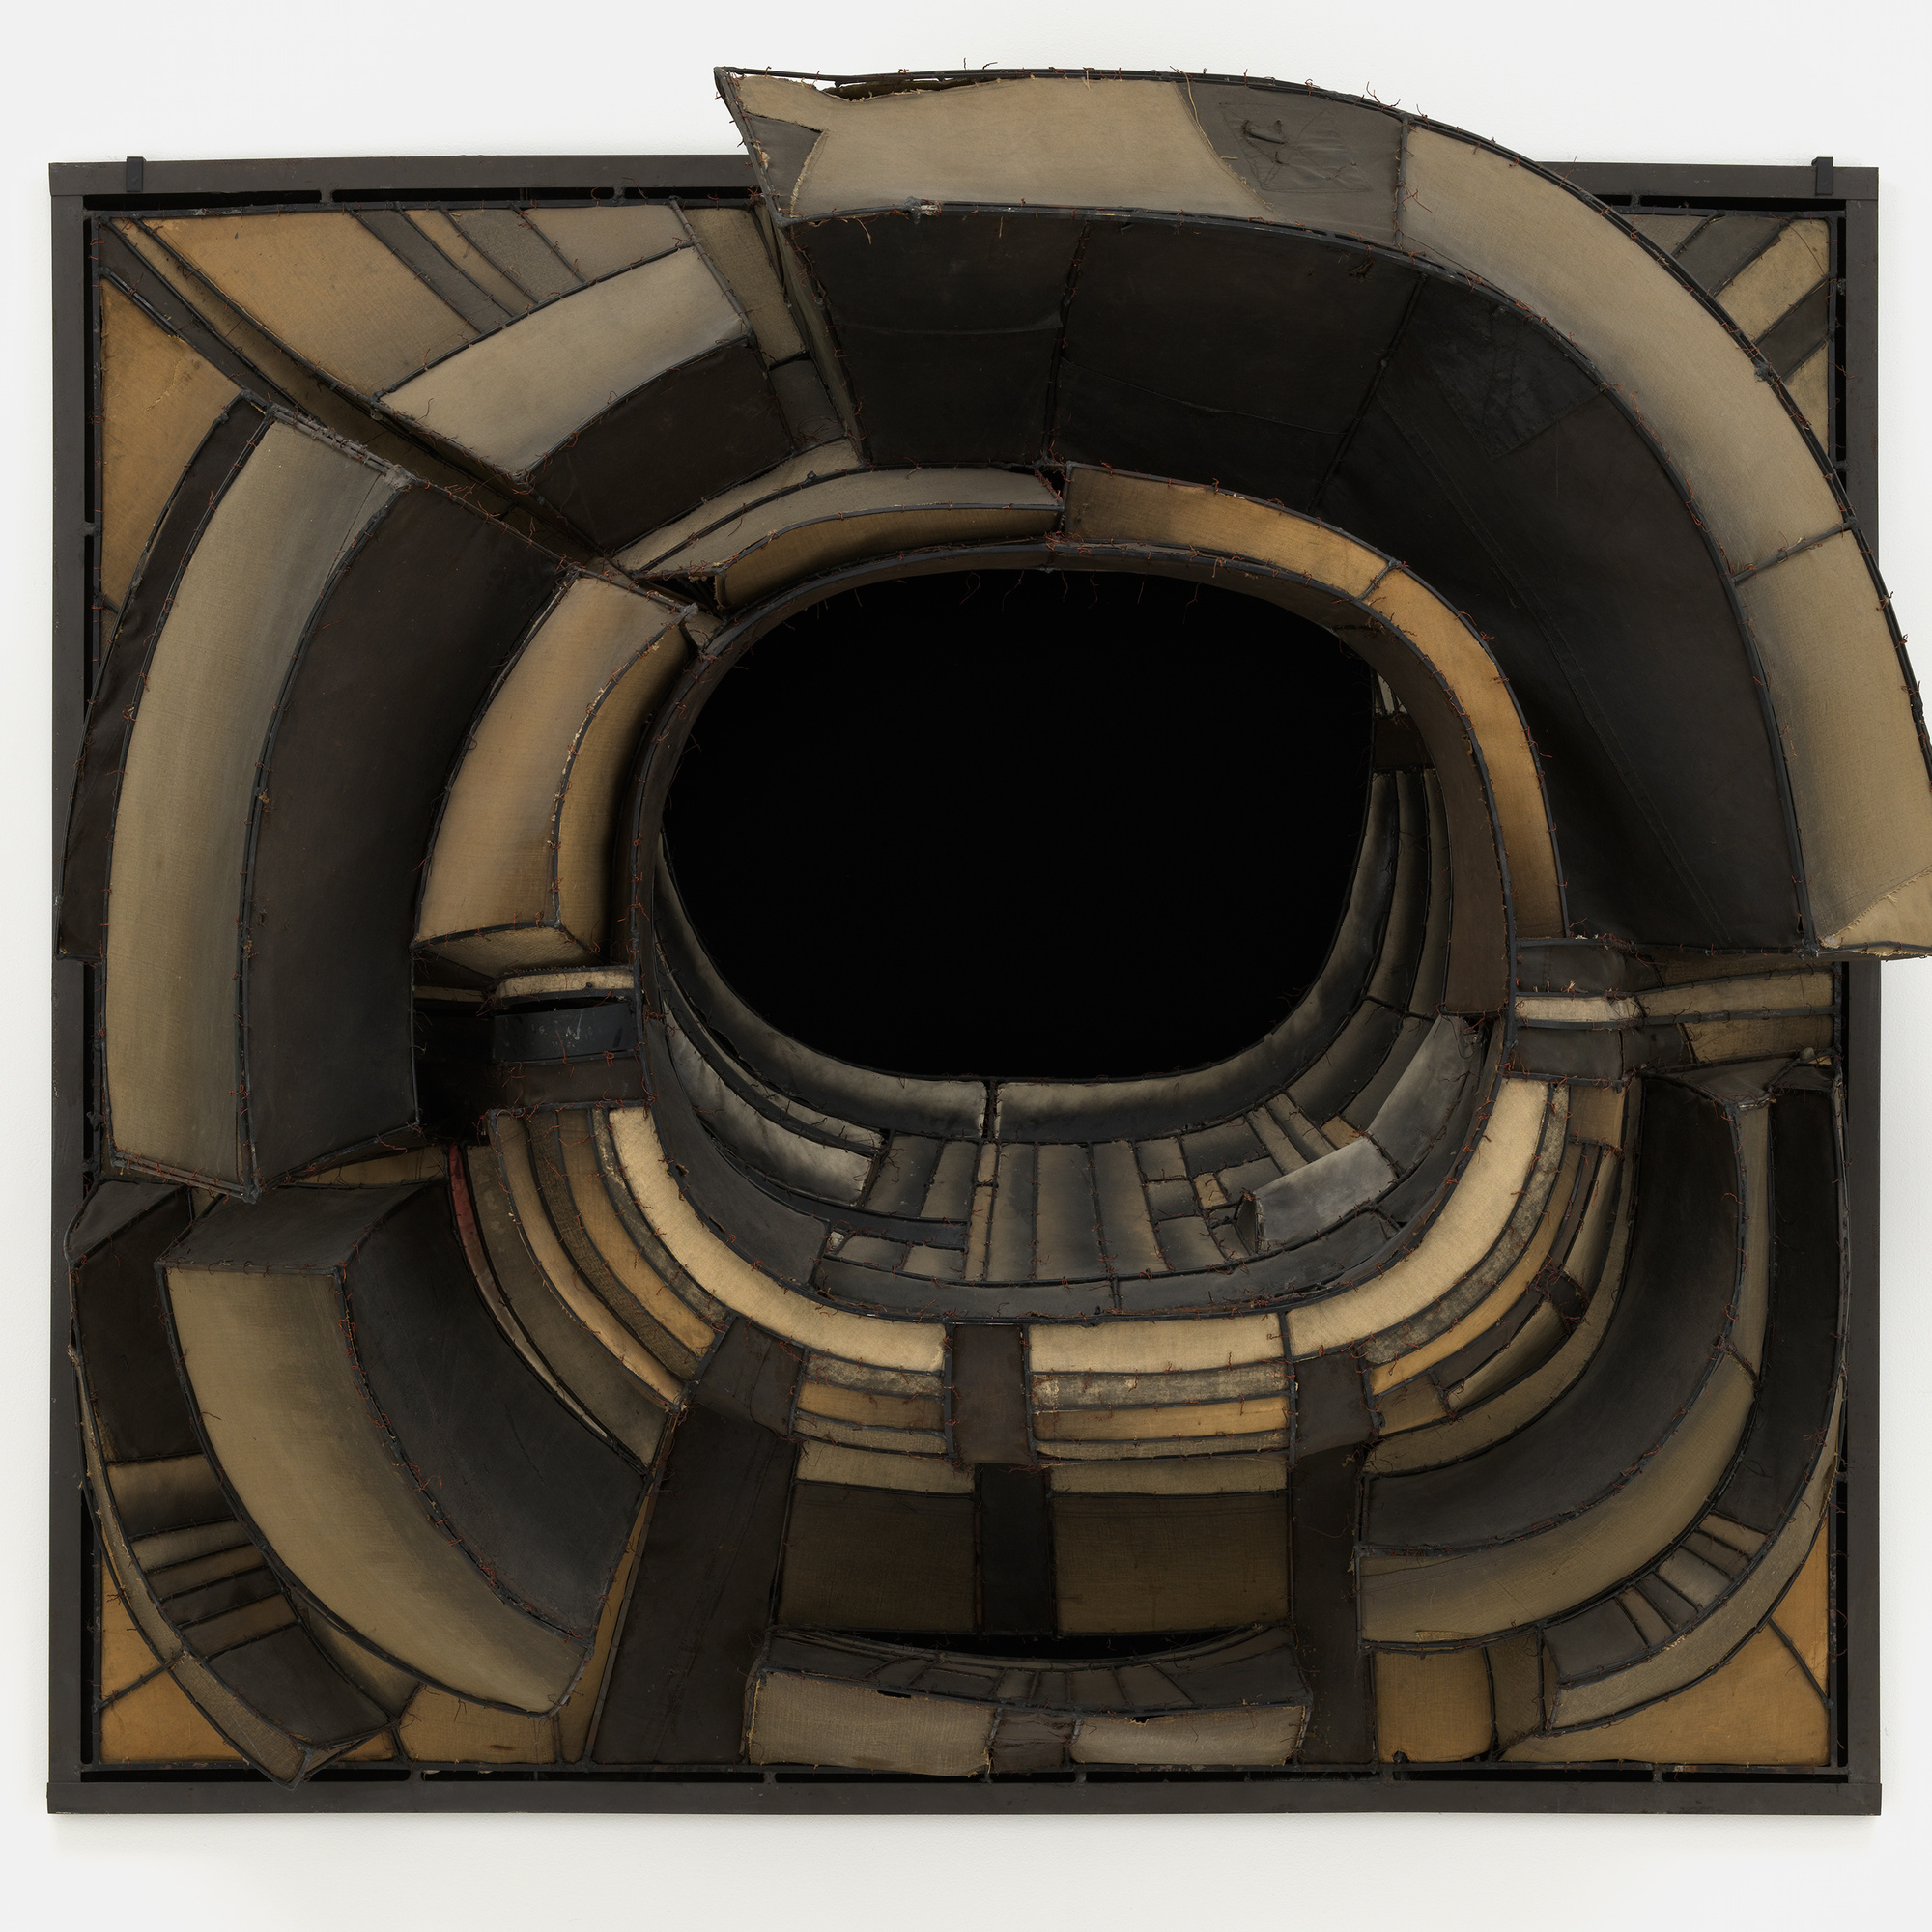 "Lee Bontecou. Untitled. 1961. Welded steel, canvas, black fabric, rawhide, copper wire, and soot, 6' 8 1/4"" x 7' 5"" x 34 3/4"" (203.6 x 226 x 88 cm). The Museum of Modern Art, New York. Kay Sage Tanguy Fund"